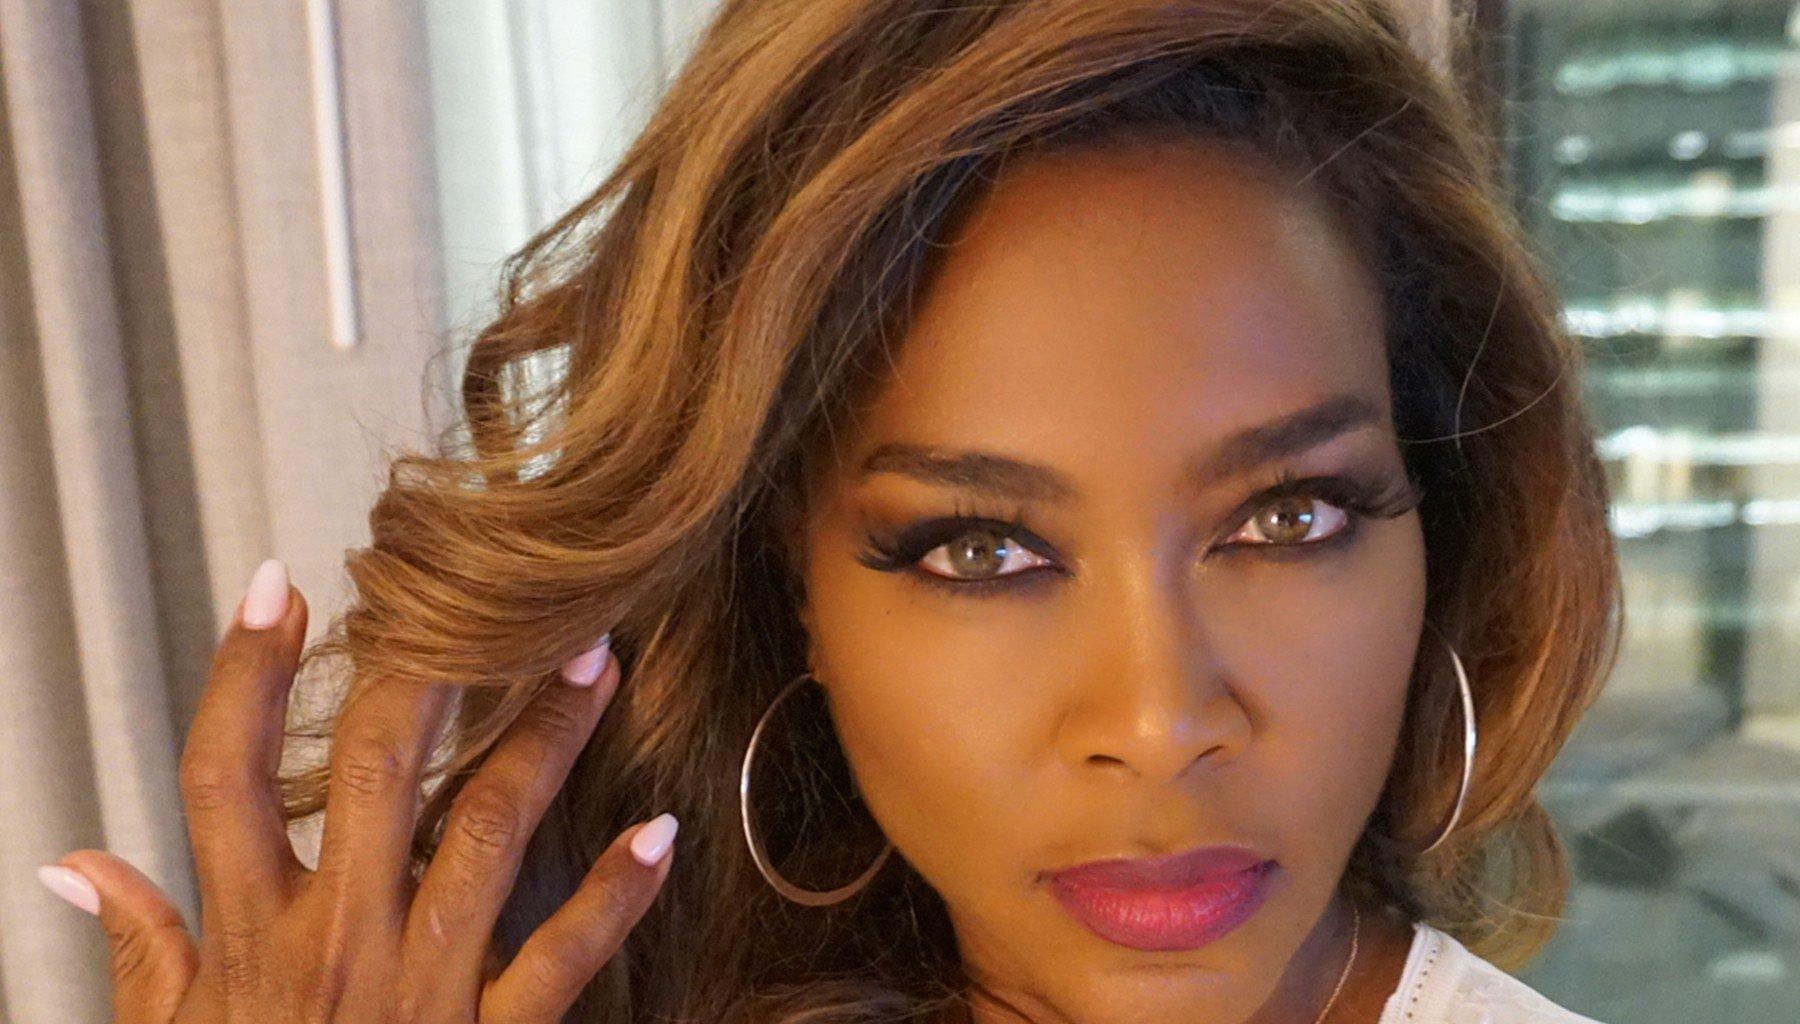 Kenya Moore's Latest Photo Has Fans In Awe - Check Out Her Look Here